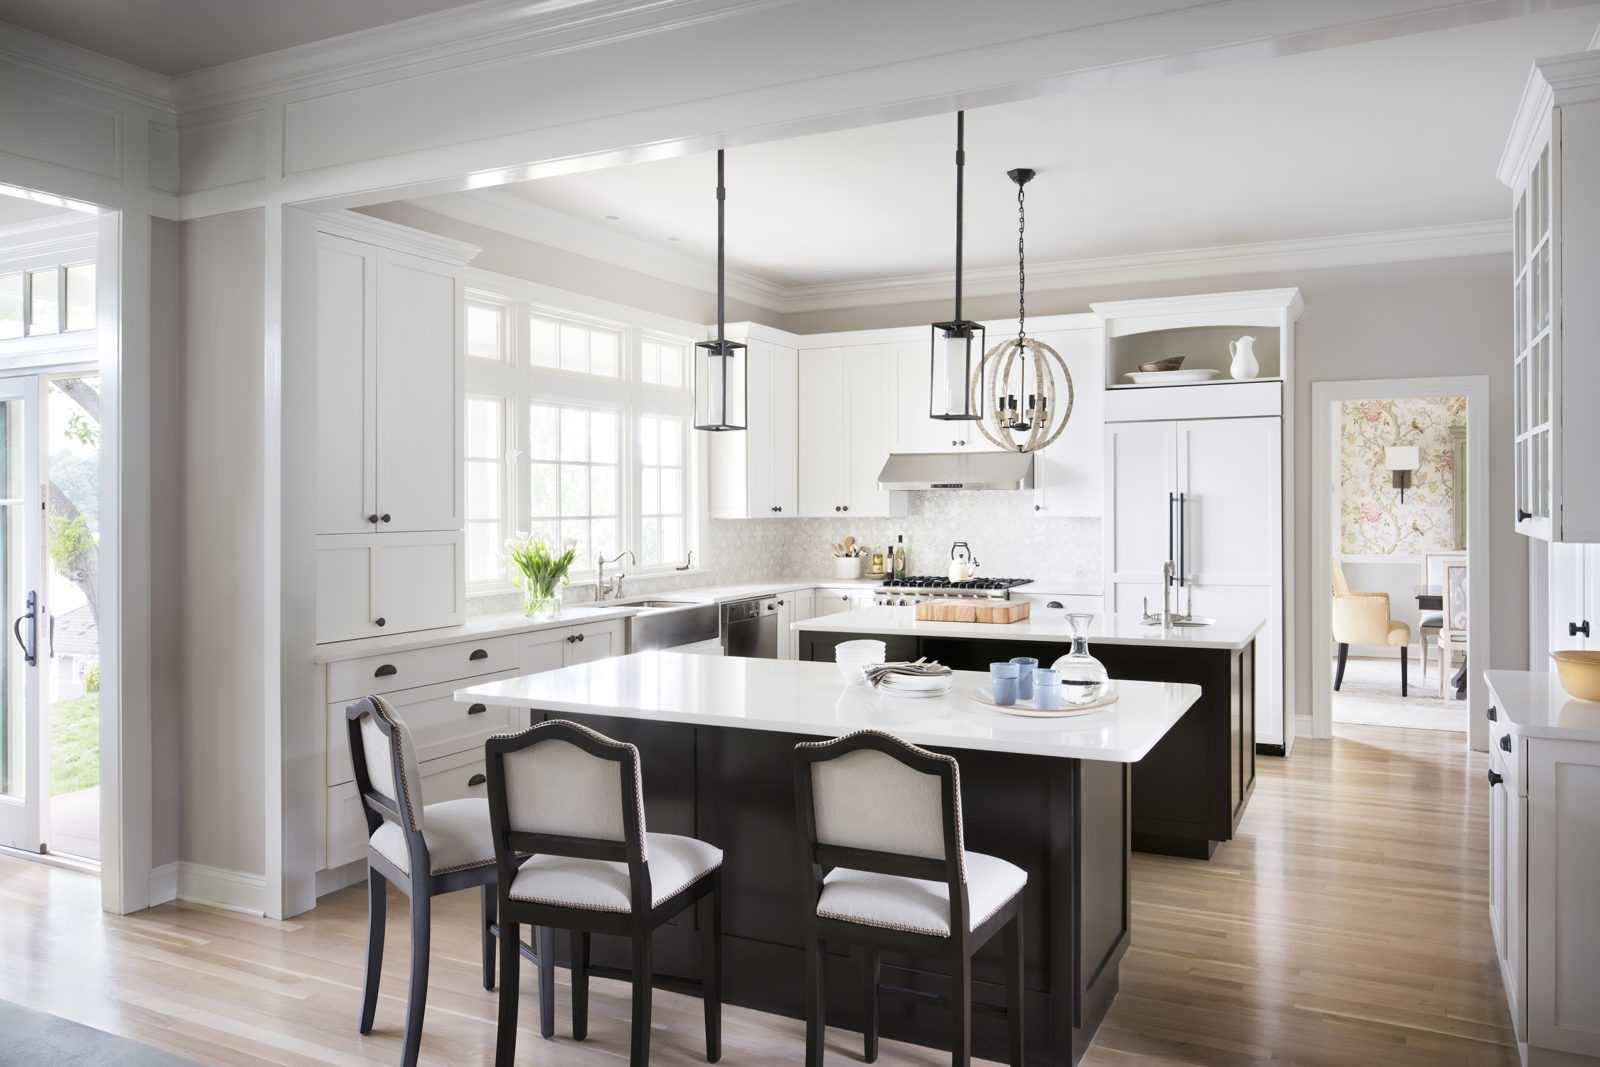 Large white kitchen with dark wood cabinets